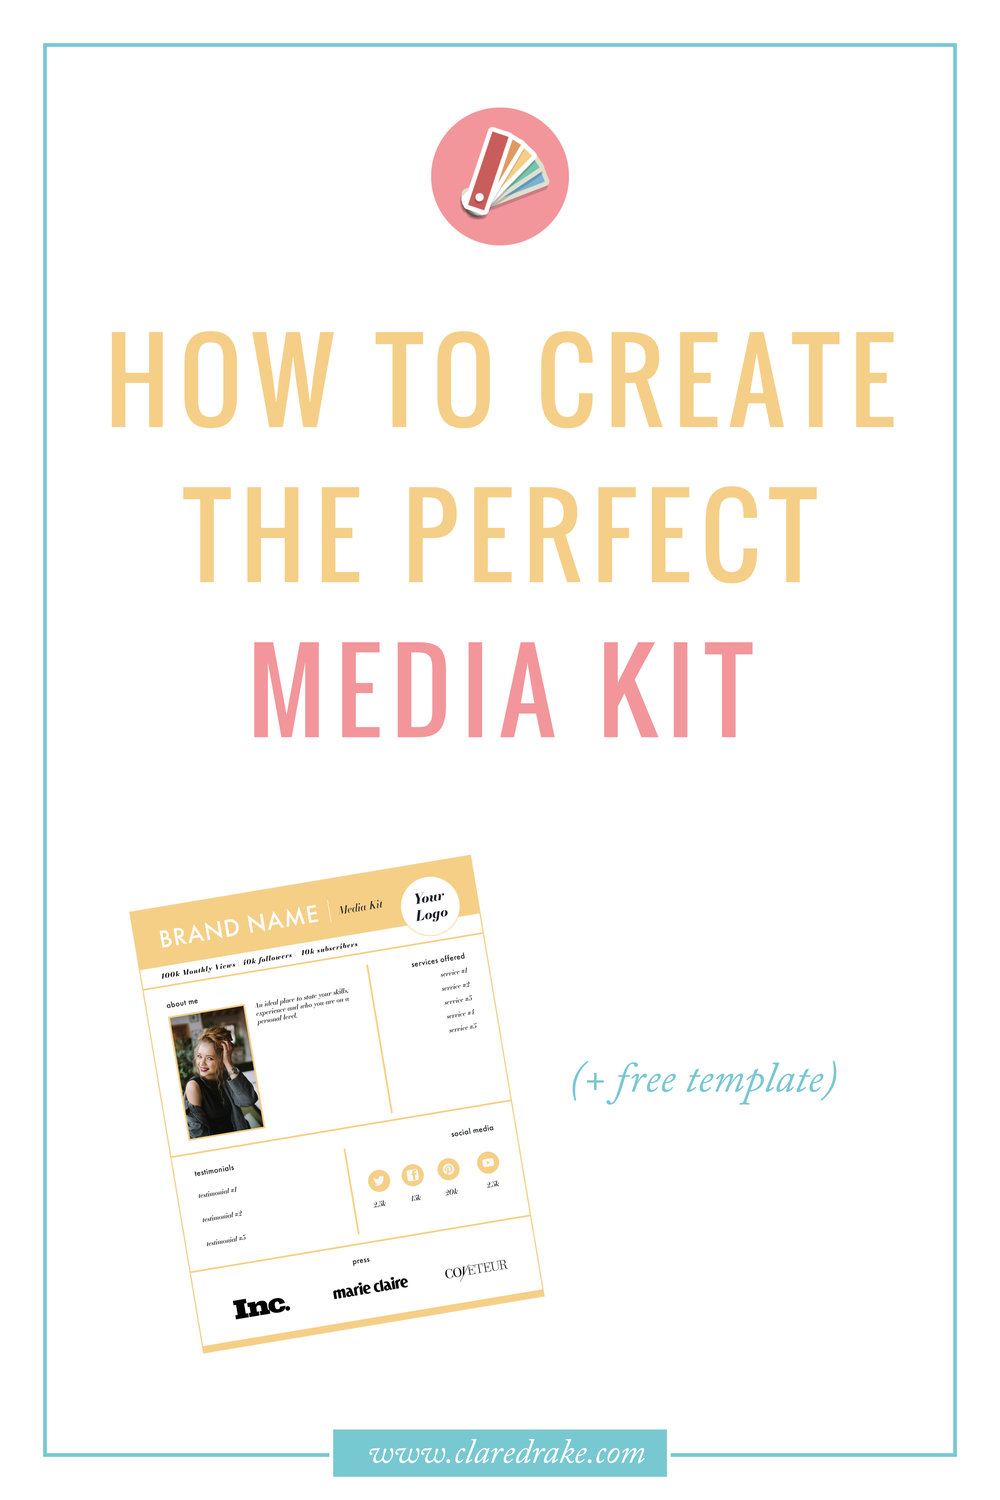 Media Kit 101: How & Why You Need a Media Kit